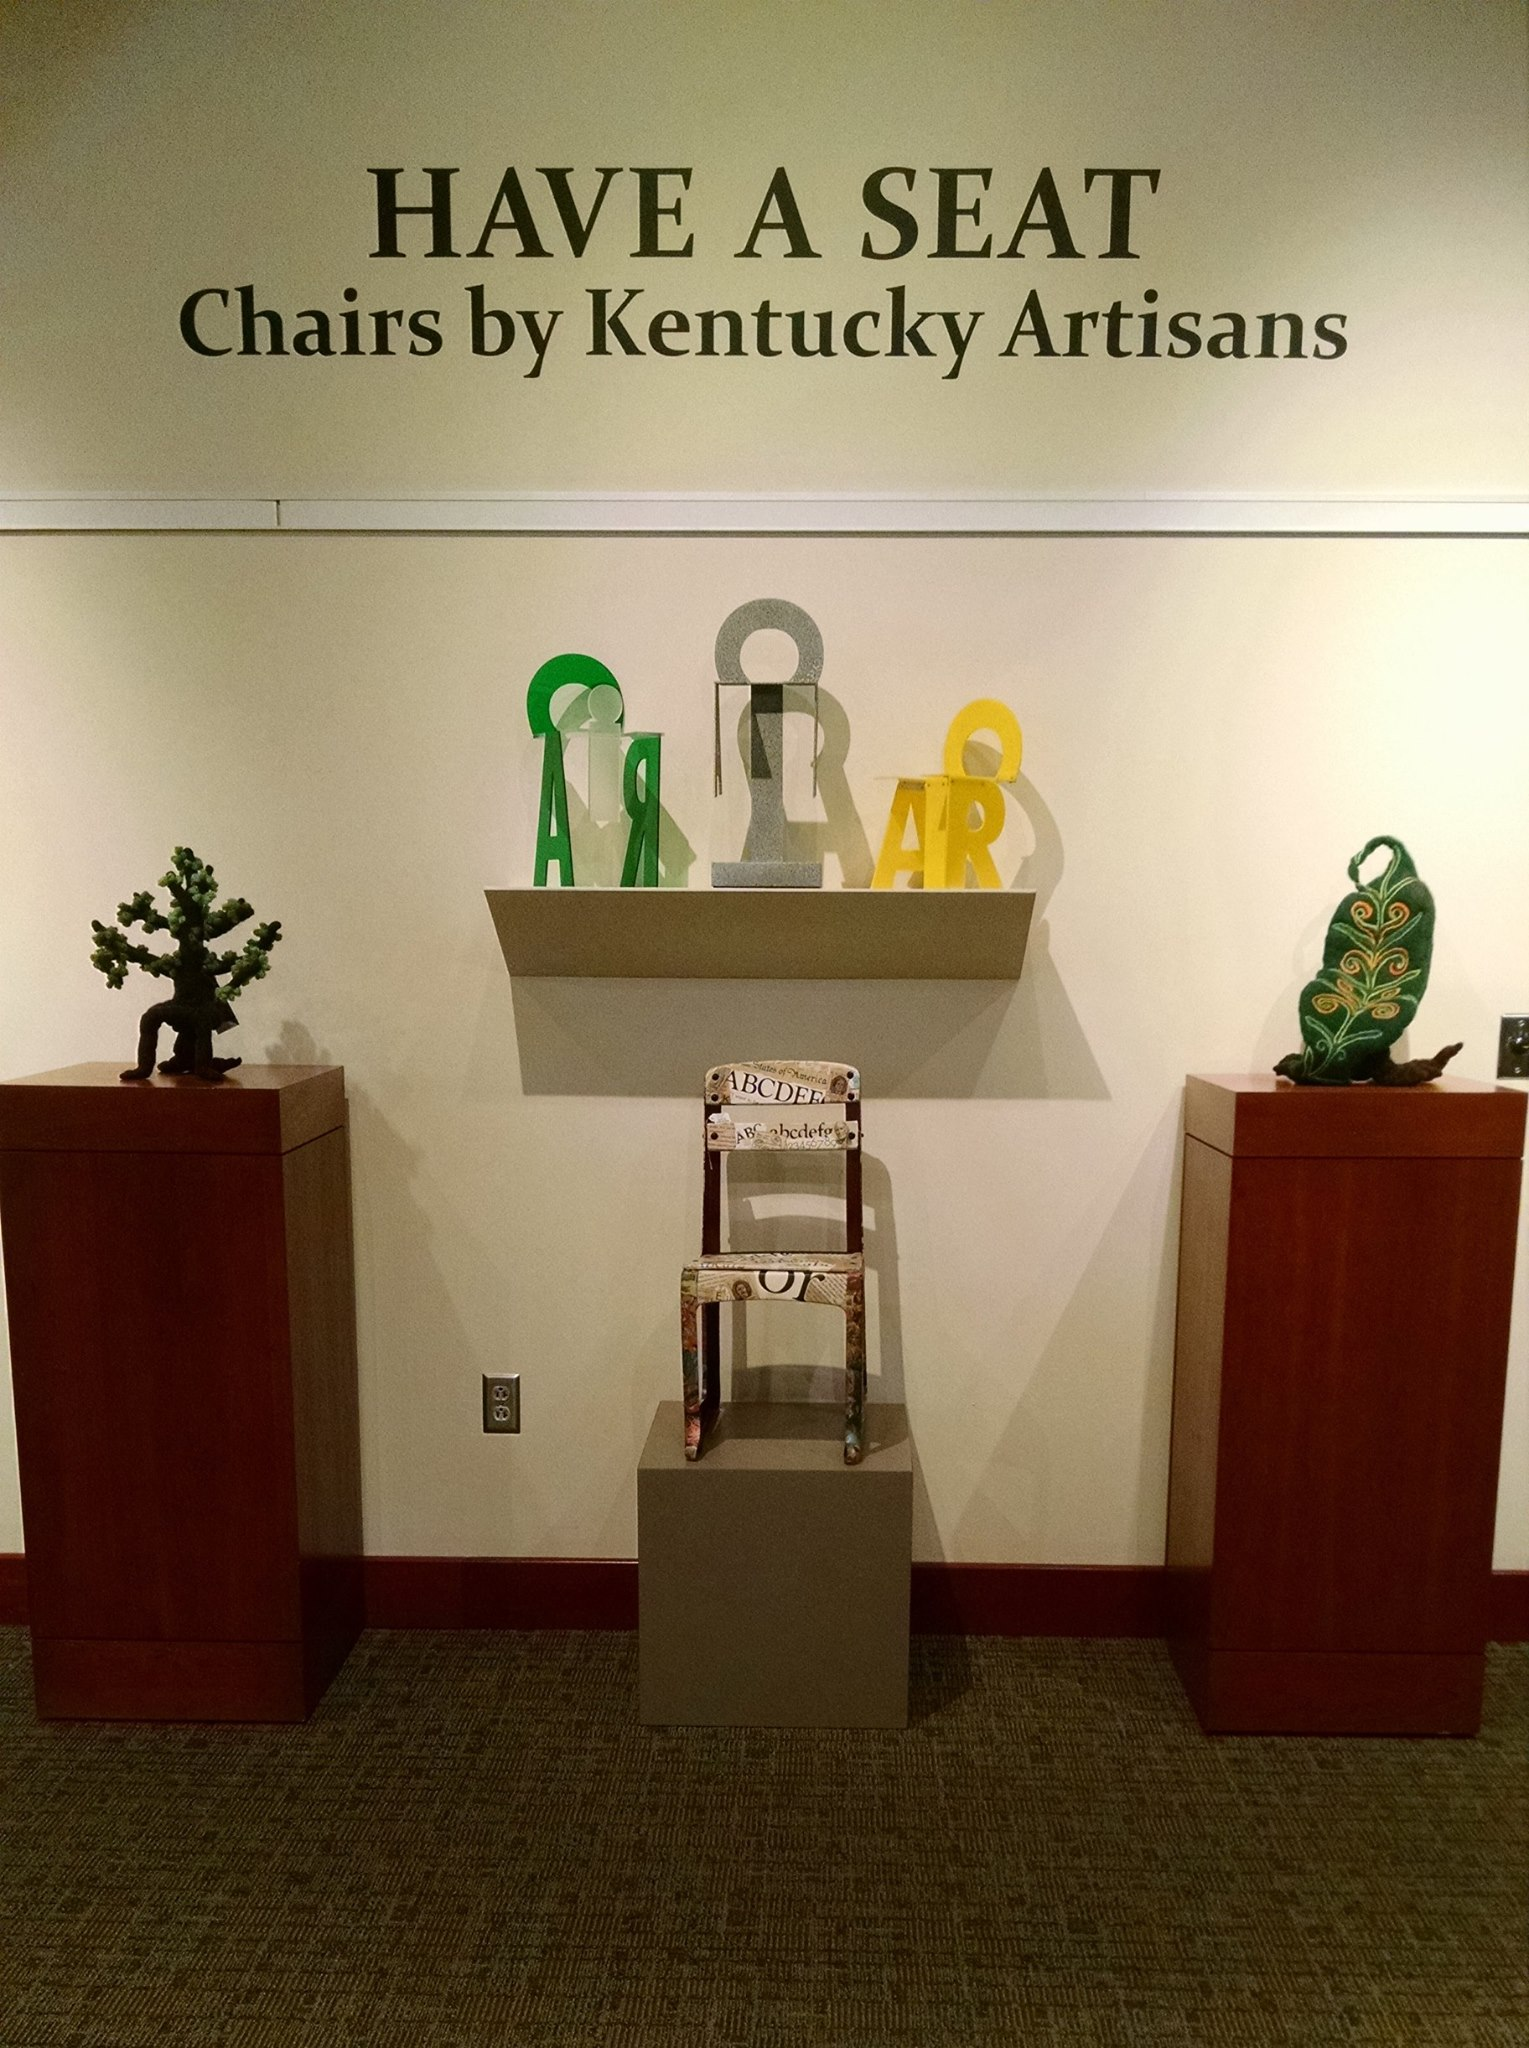 Have a Seat: Chairs by Kentucky Artisans ~ includes a repurposed vintage classroom chair by John Andrew Dixon of Danville, Kentucky